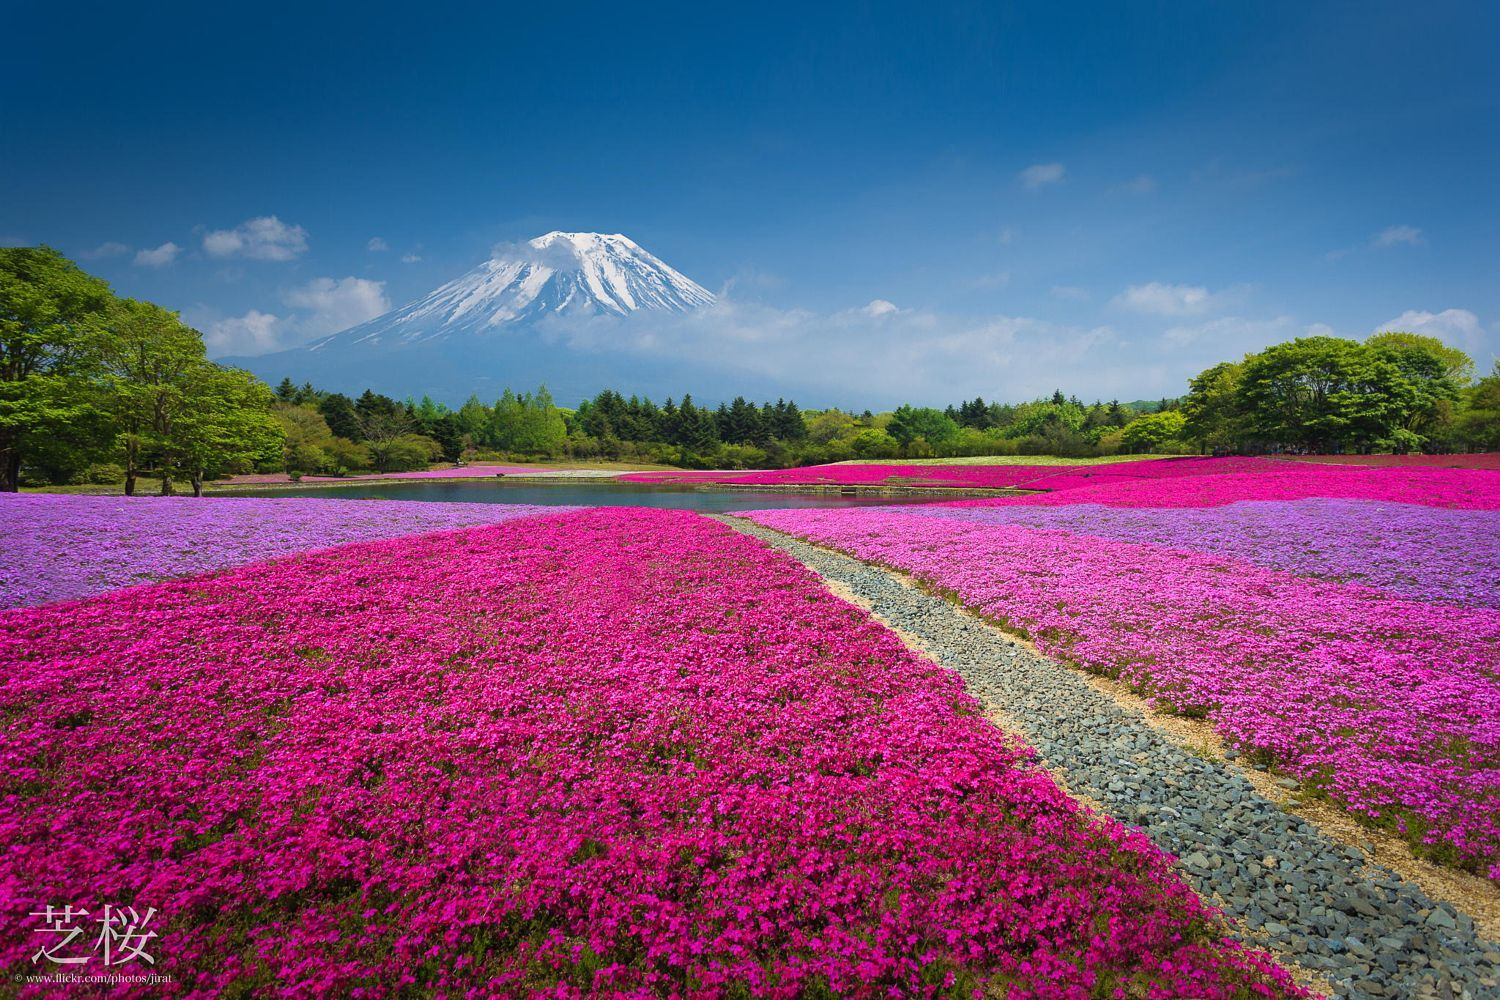 Mountain Fuji With The Field Of Pink Moss Cherry Blossom In Japan By